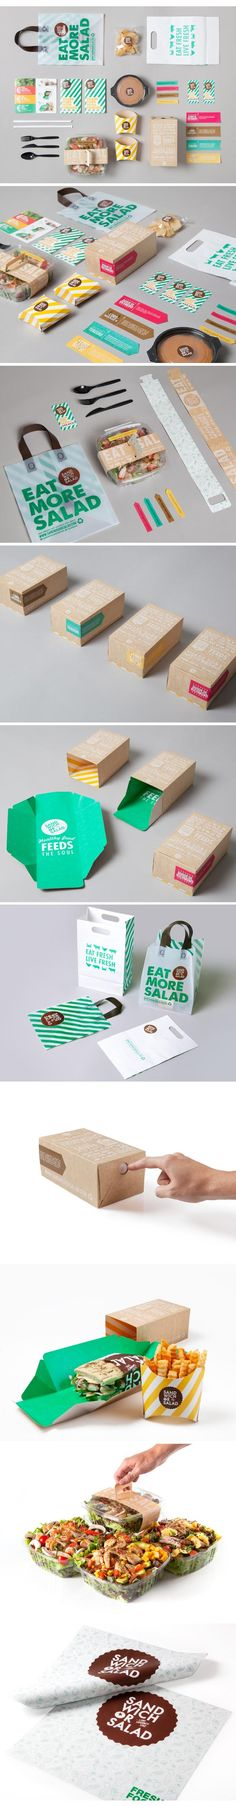 Sandwich or Salad by Masif #identity #packaging PD